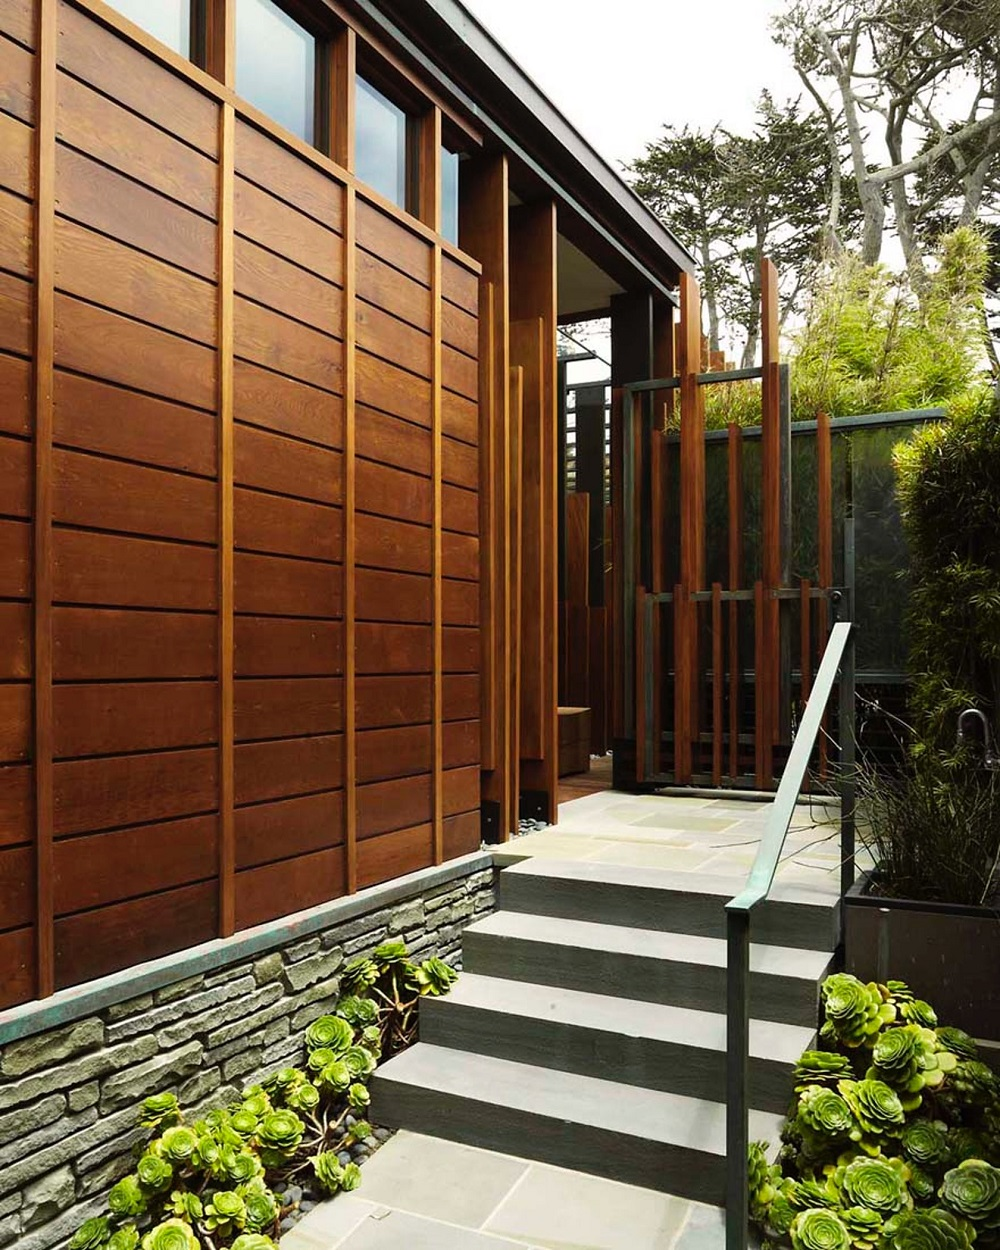 t8-1 types of wood paneling that you can use on the outside of your home